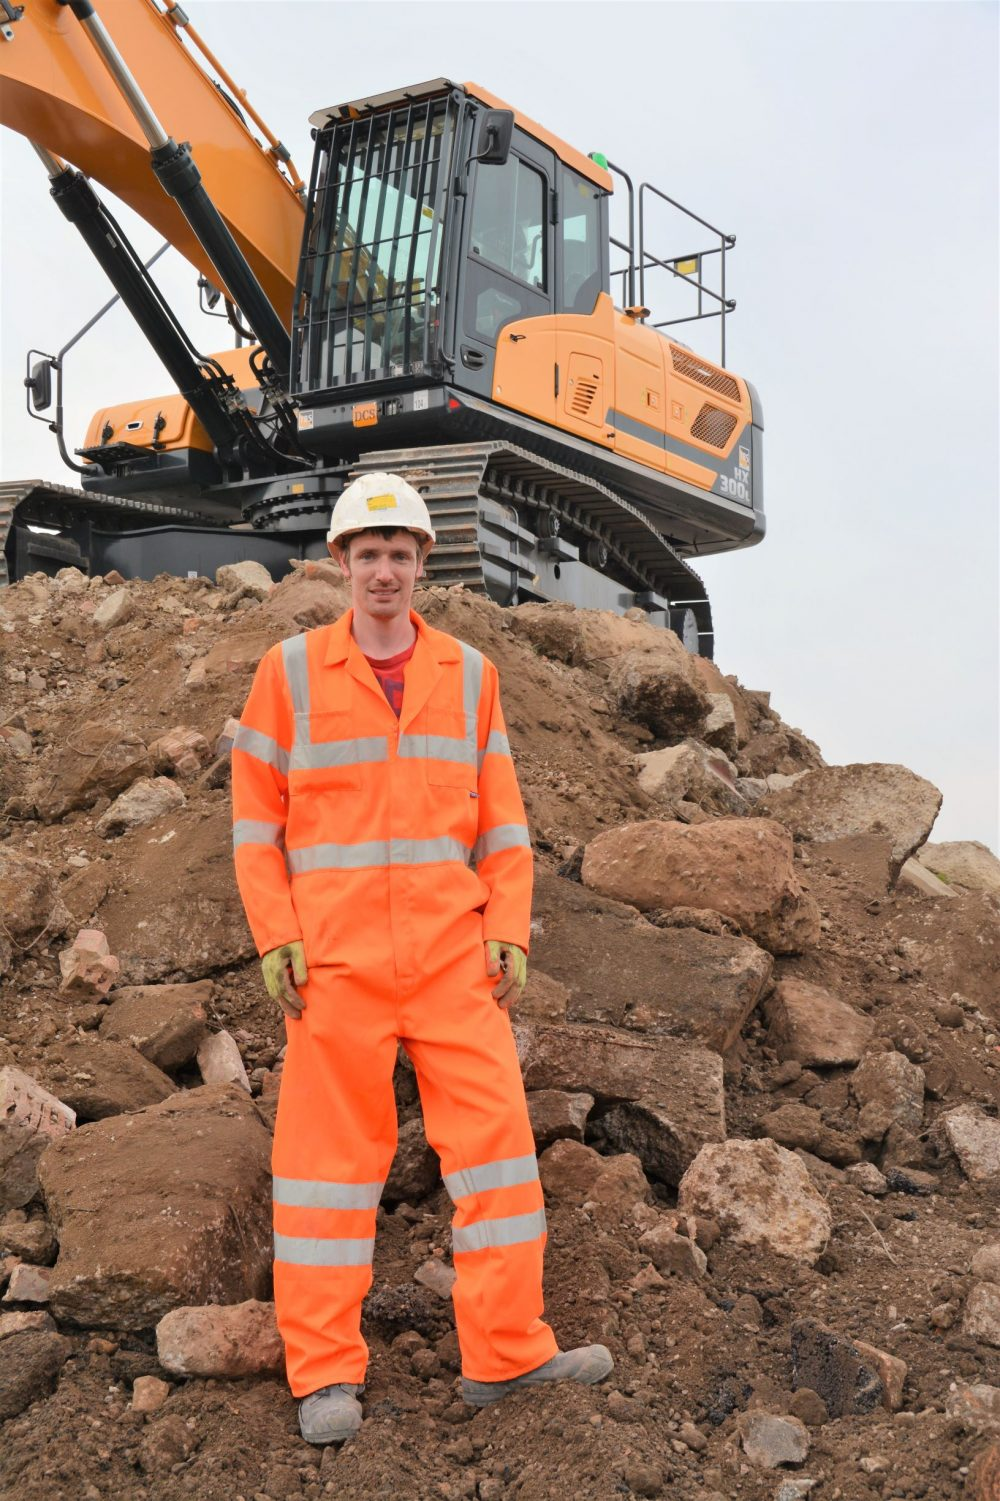 Steve Ford with his brand new Hyundai HX300L Excavator